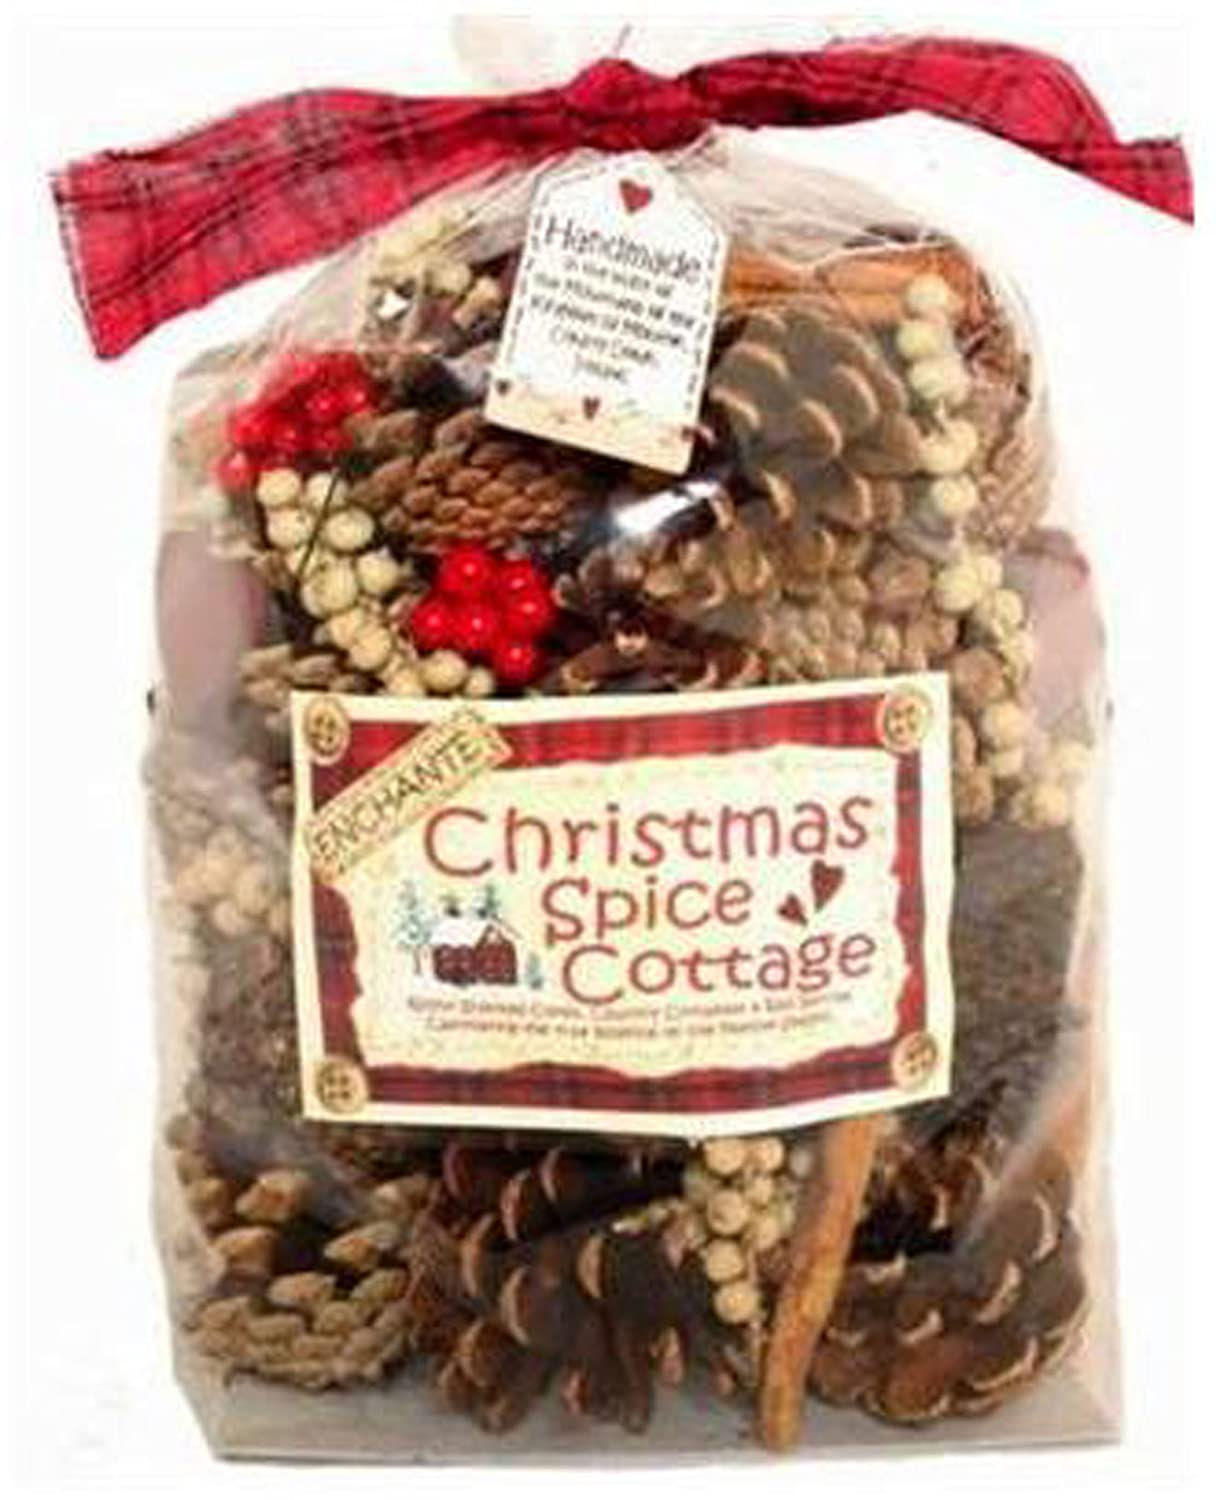 Christmas Spice Cottage Cones & Pods Scented Pot Pourri (large 500g in gift bag) Avena Christmas